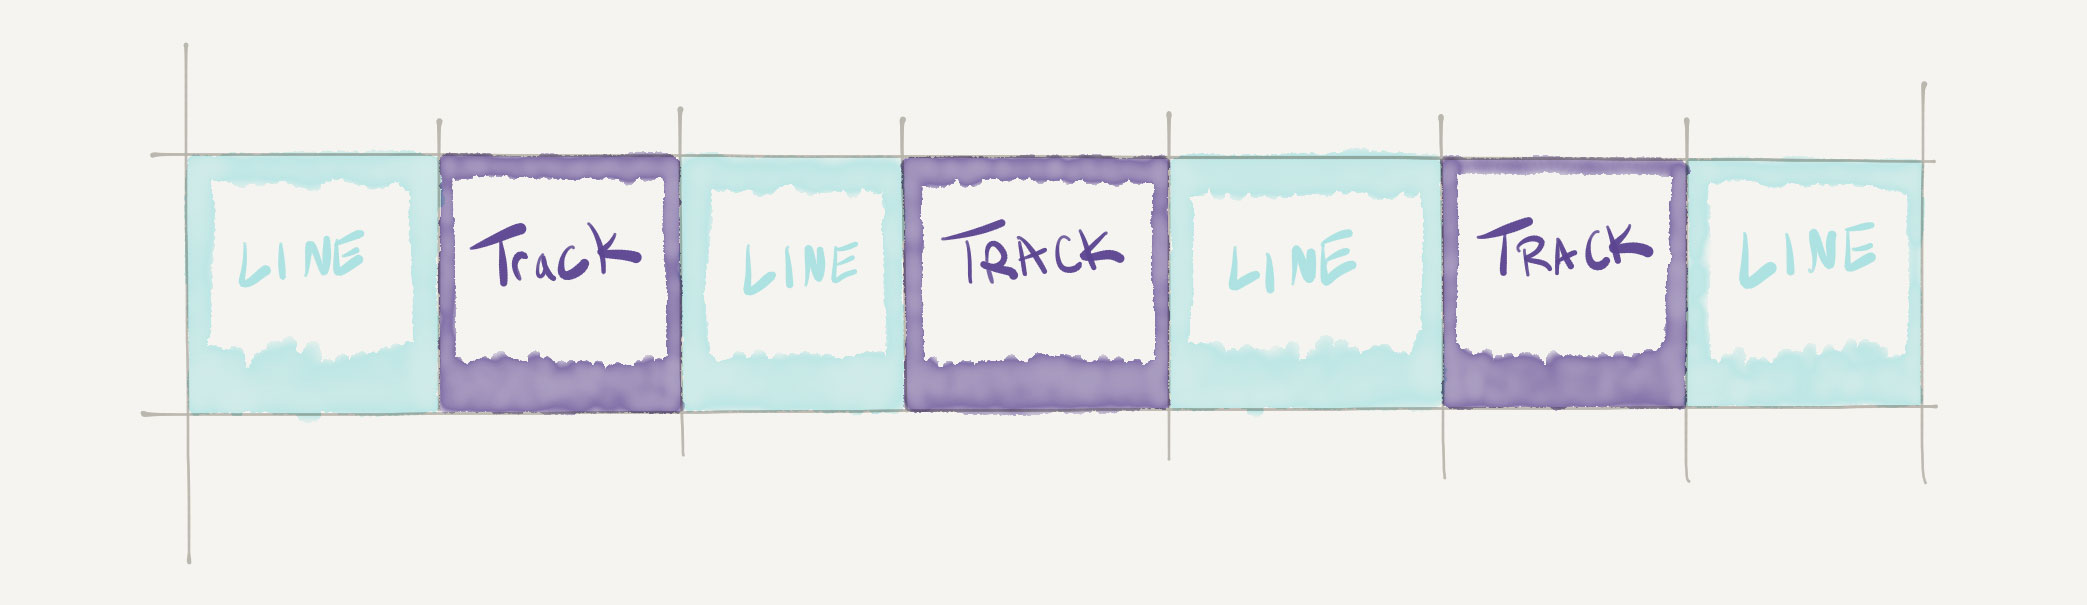 css grid line syntax